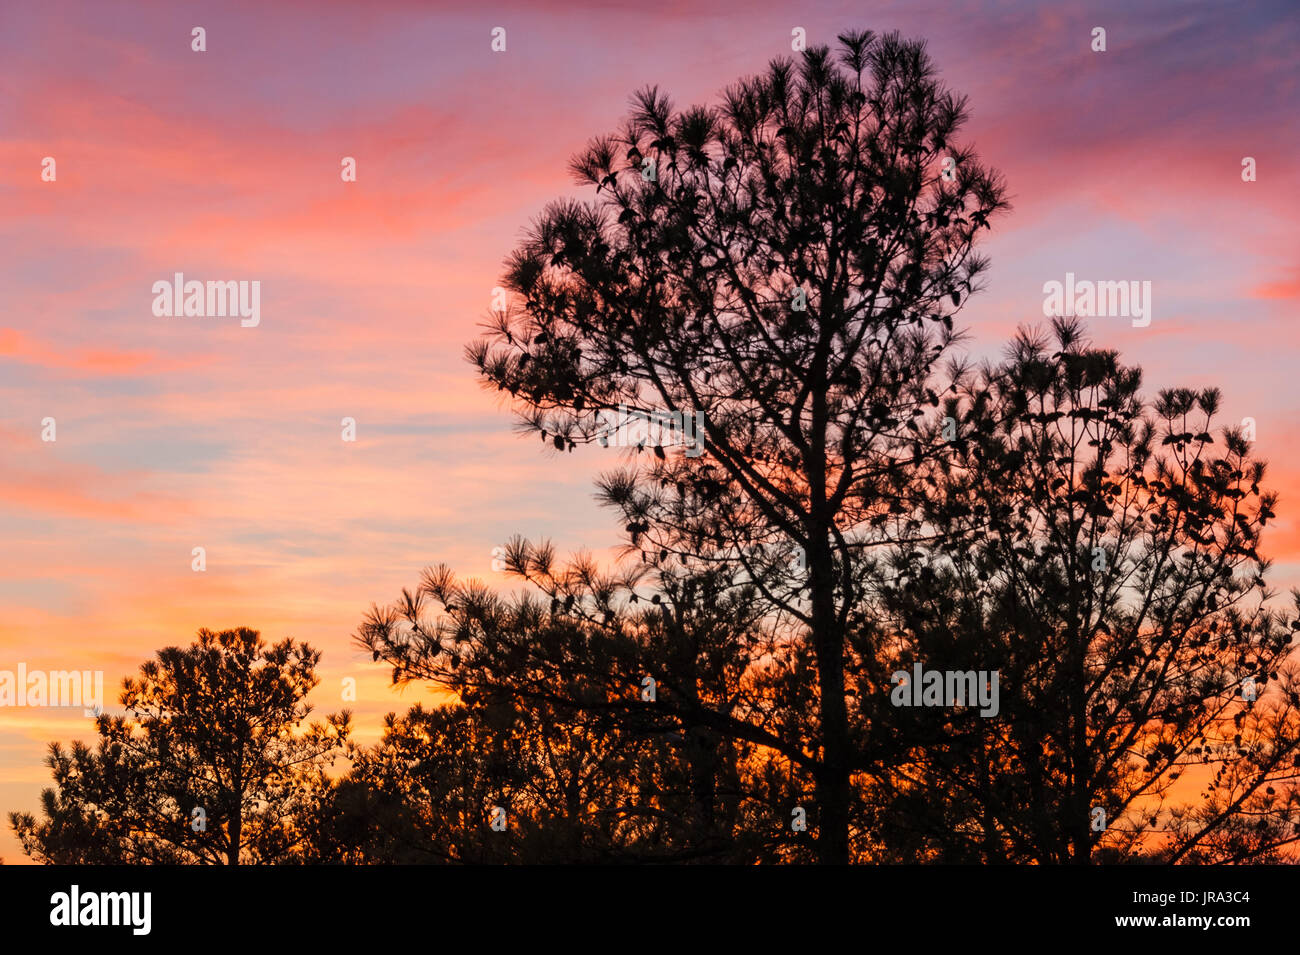 Pine trees loaded with pine cones and silhouetted against a colorful sunset sky at Stone Mountain Park in Atlanta, Georgia. (USA) - Stock Image